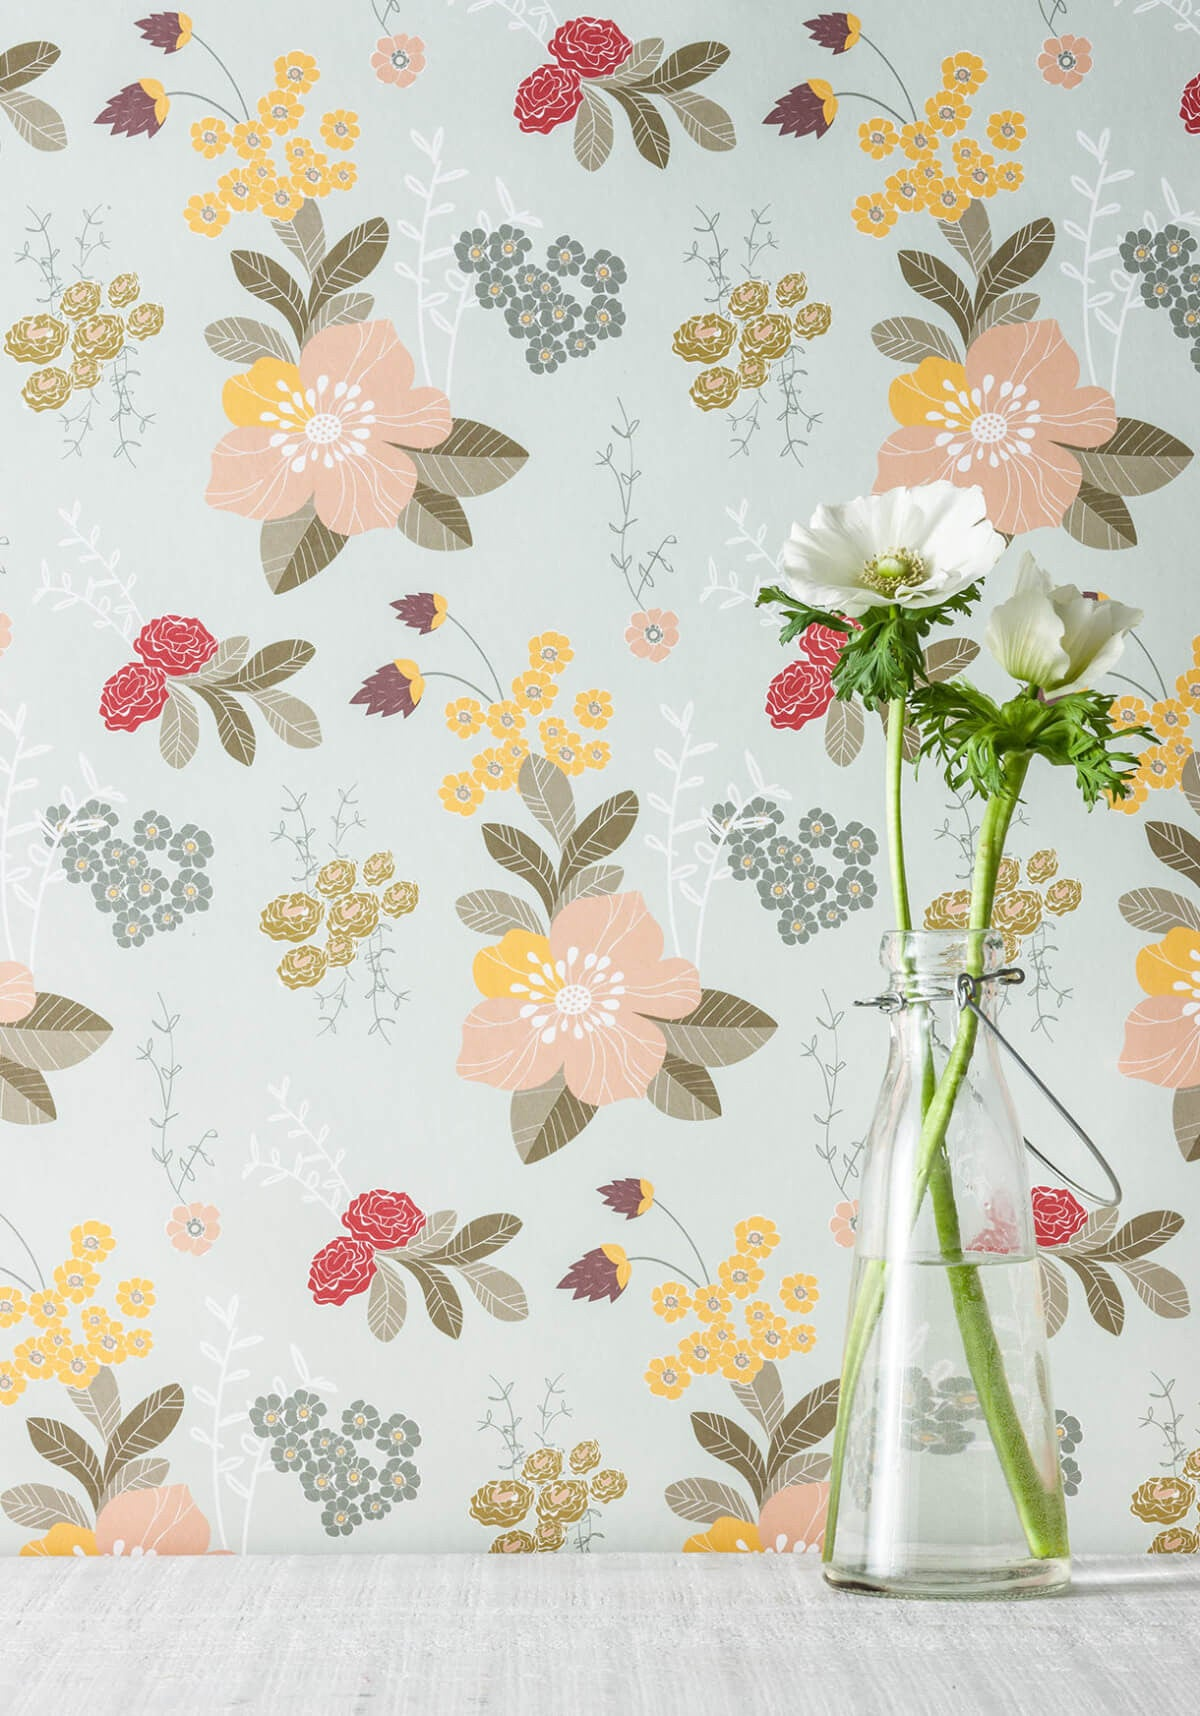 Burke decor wallpaper border